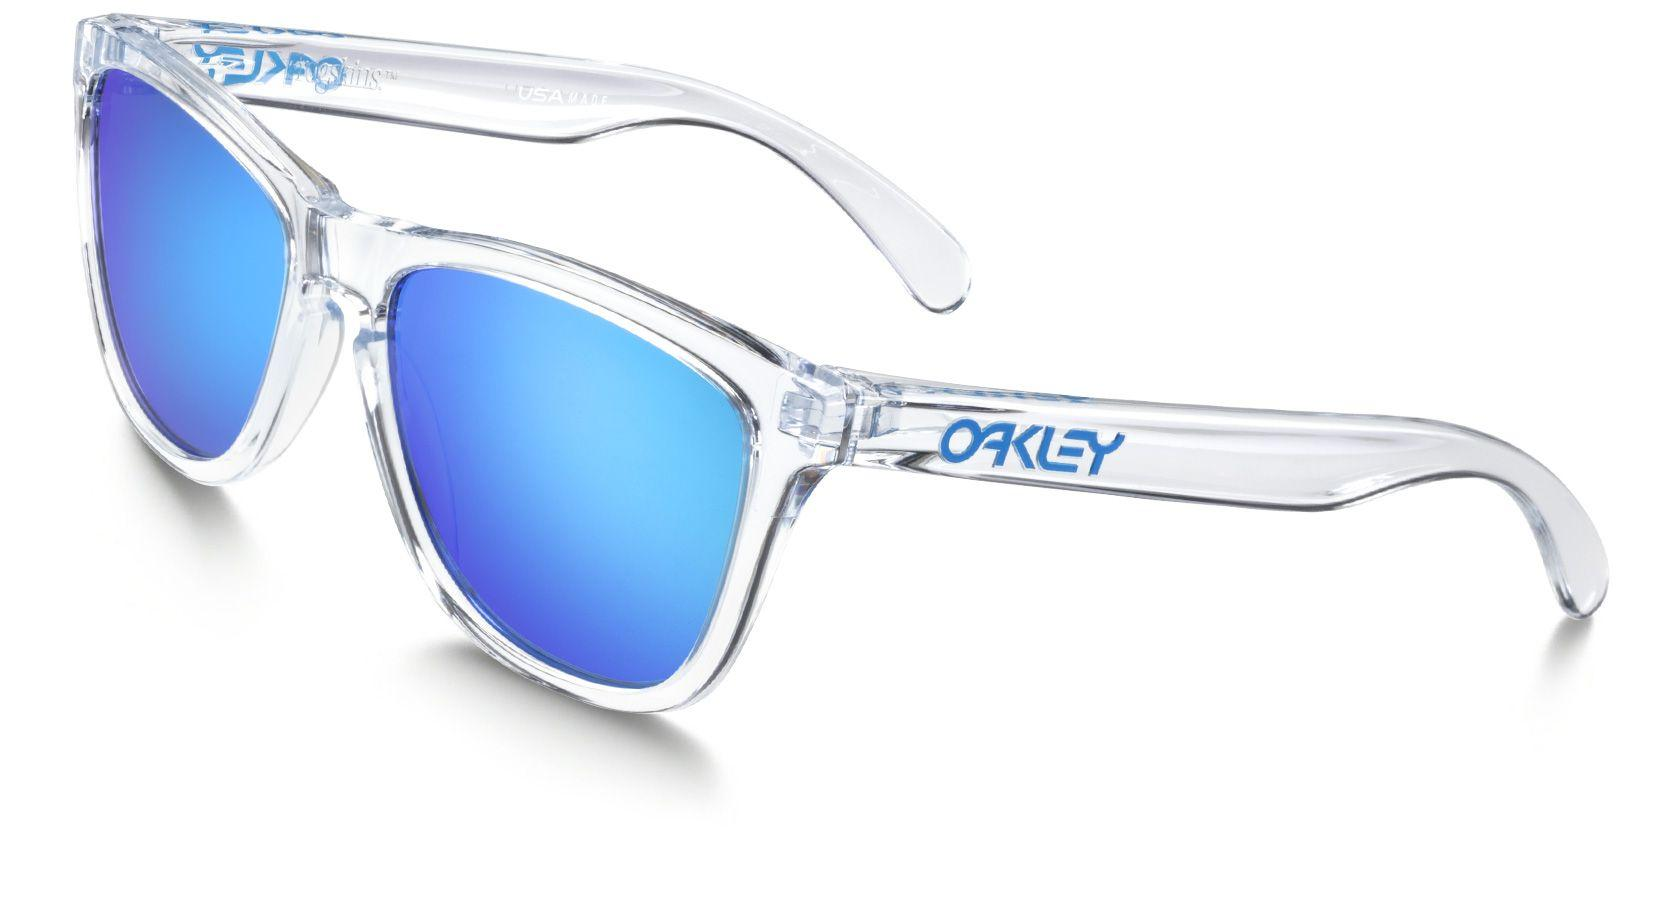 7db6625b89d Most Popular Oakley Sunglasess